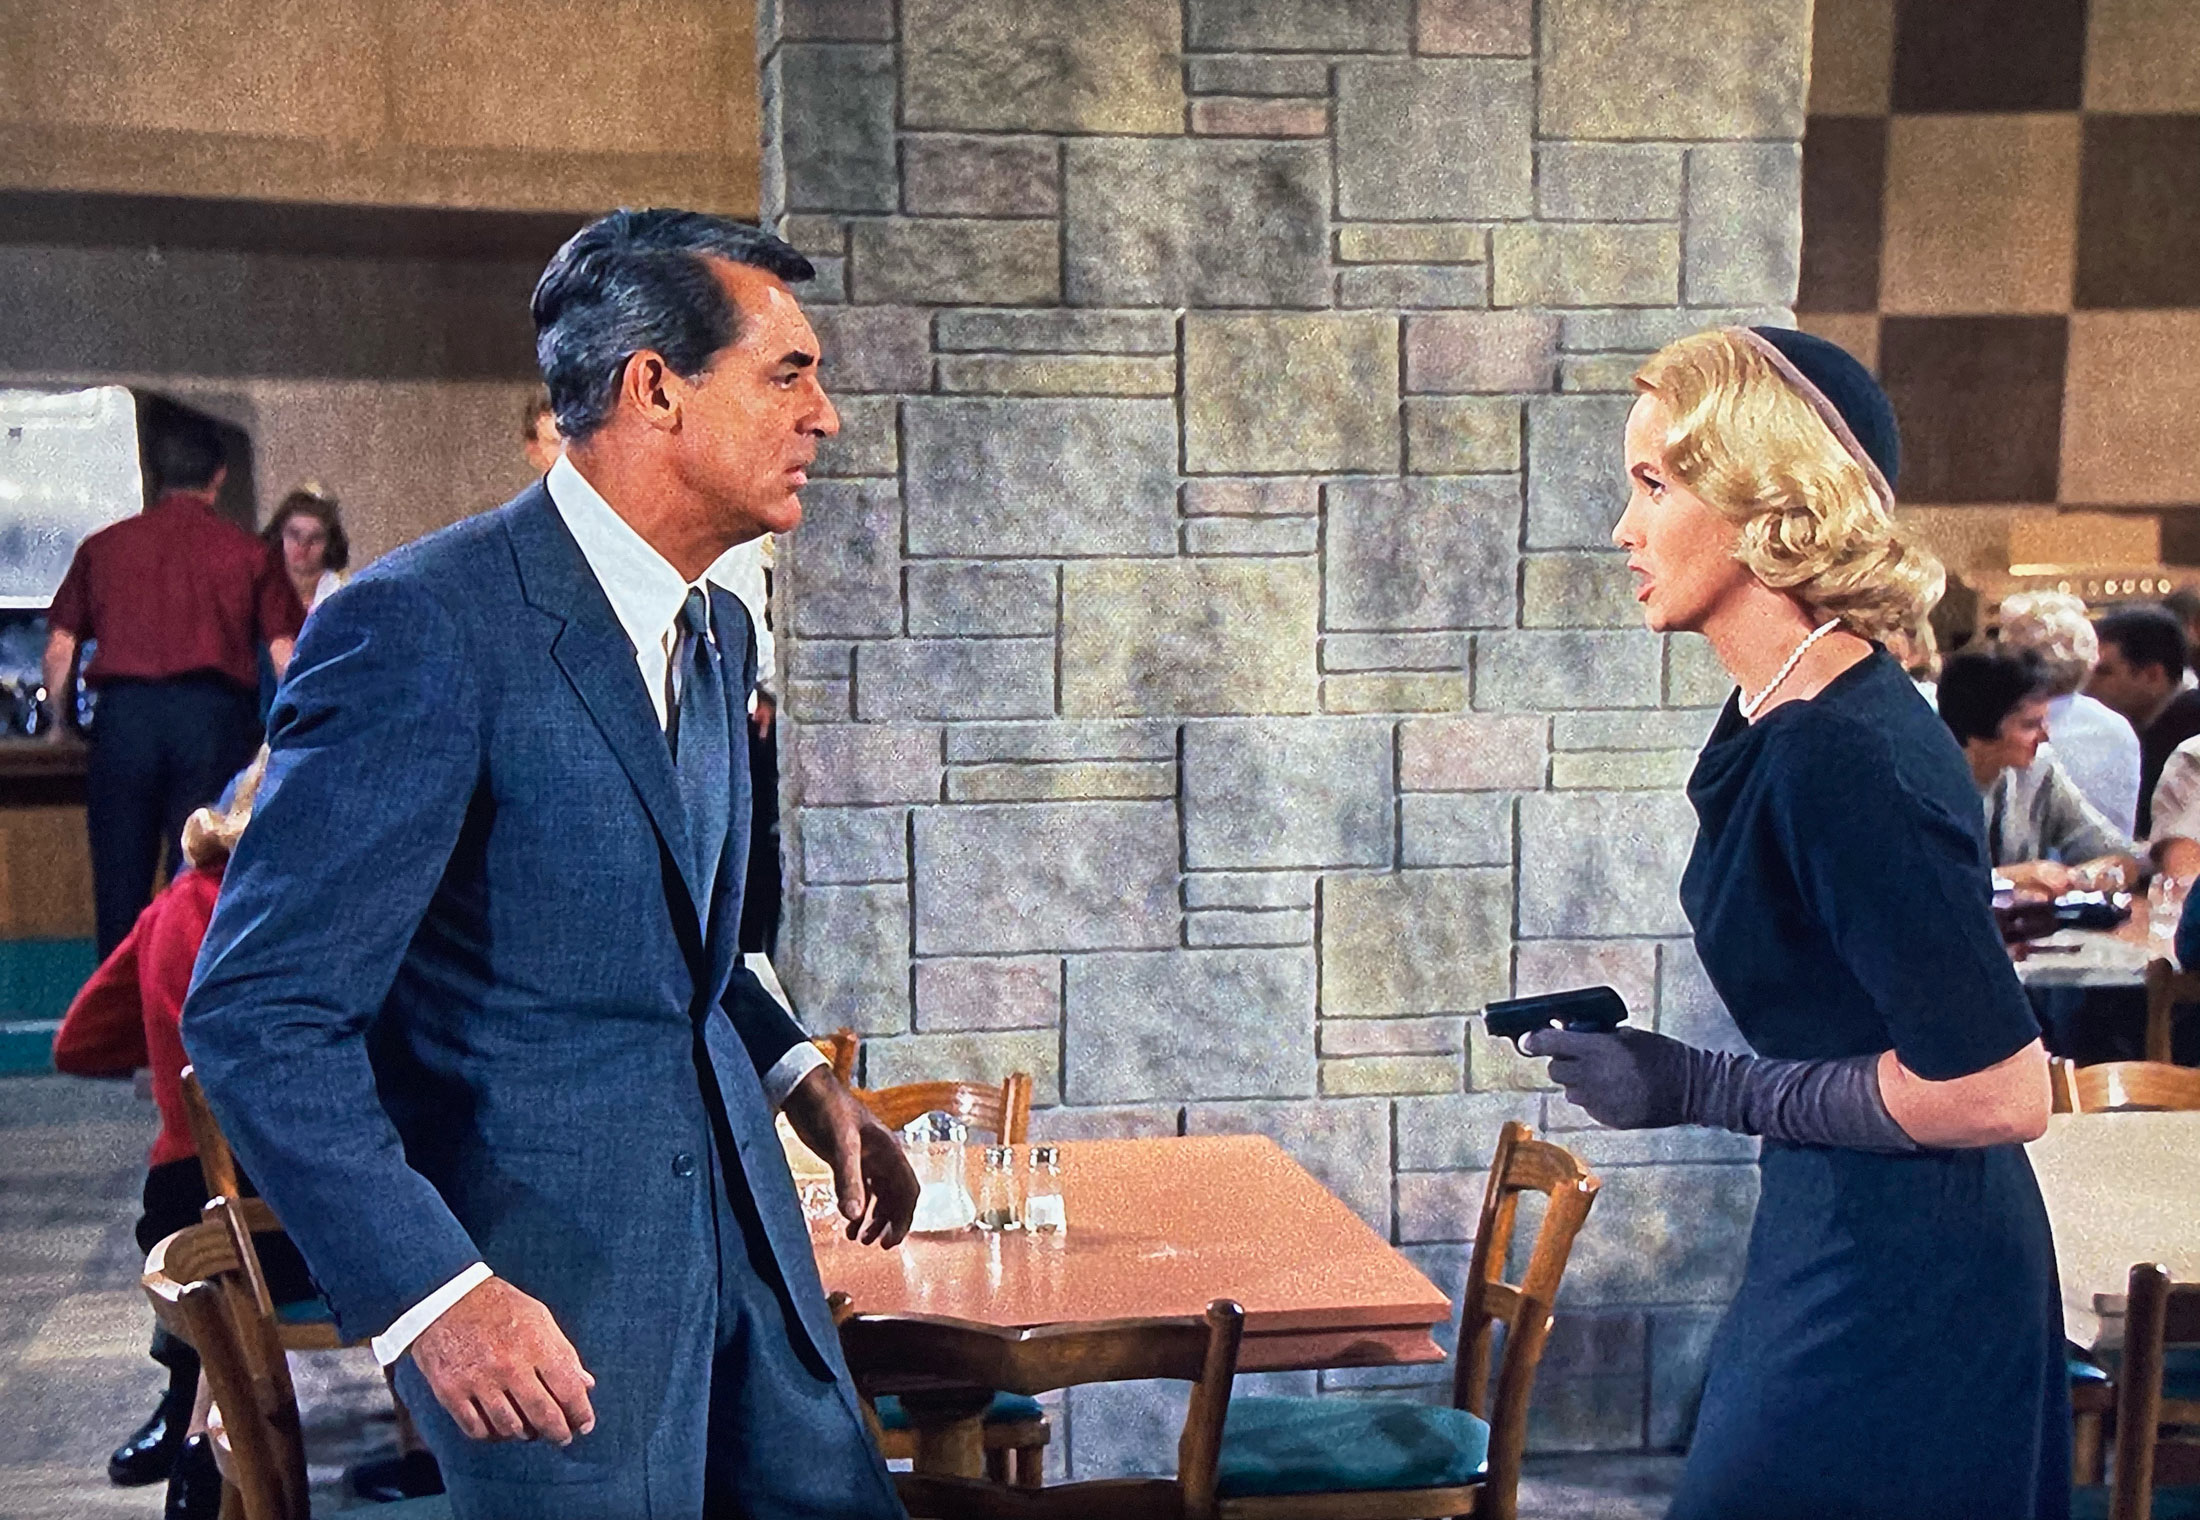 North by Northwest Cary Grant and Eva Marie Saint